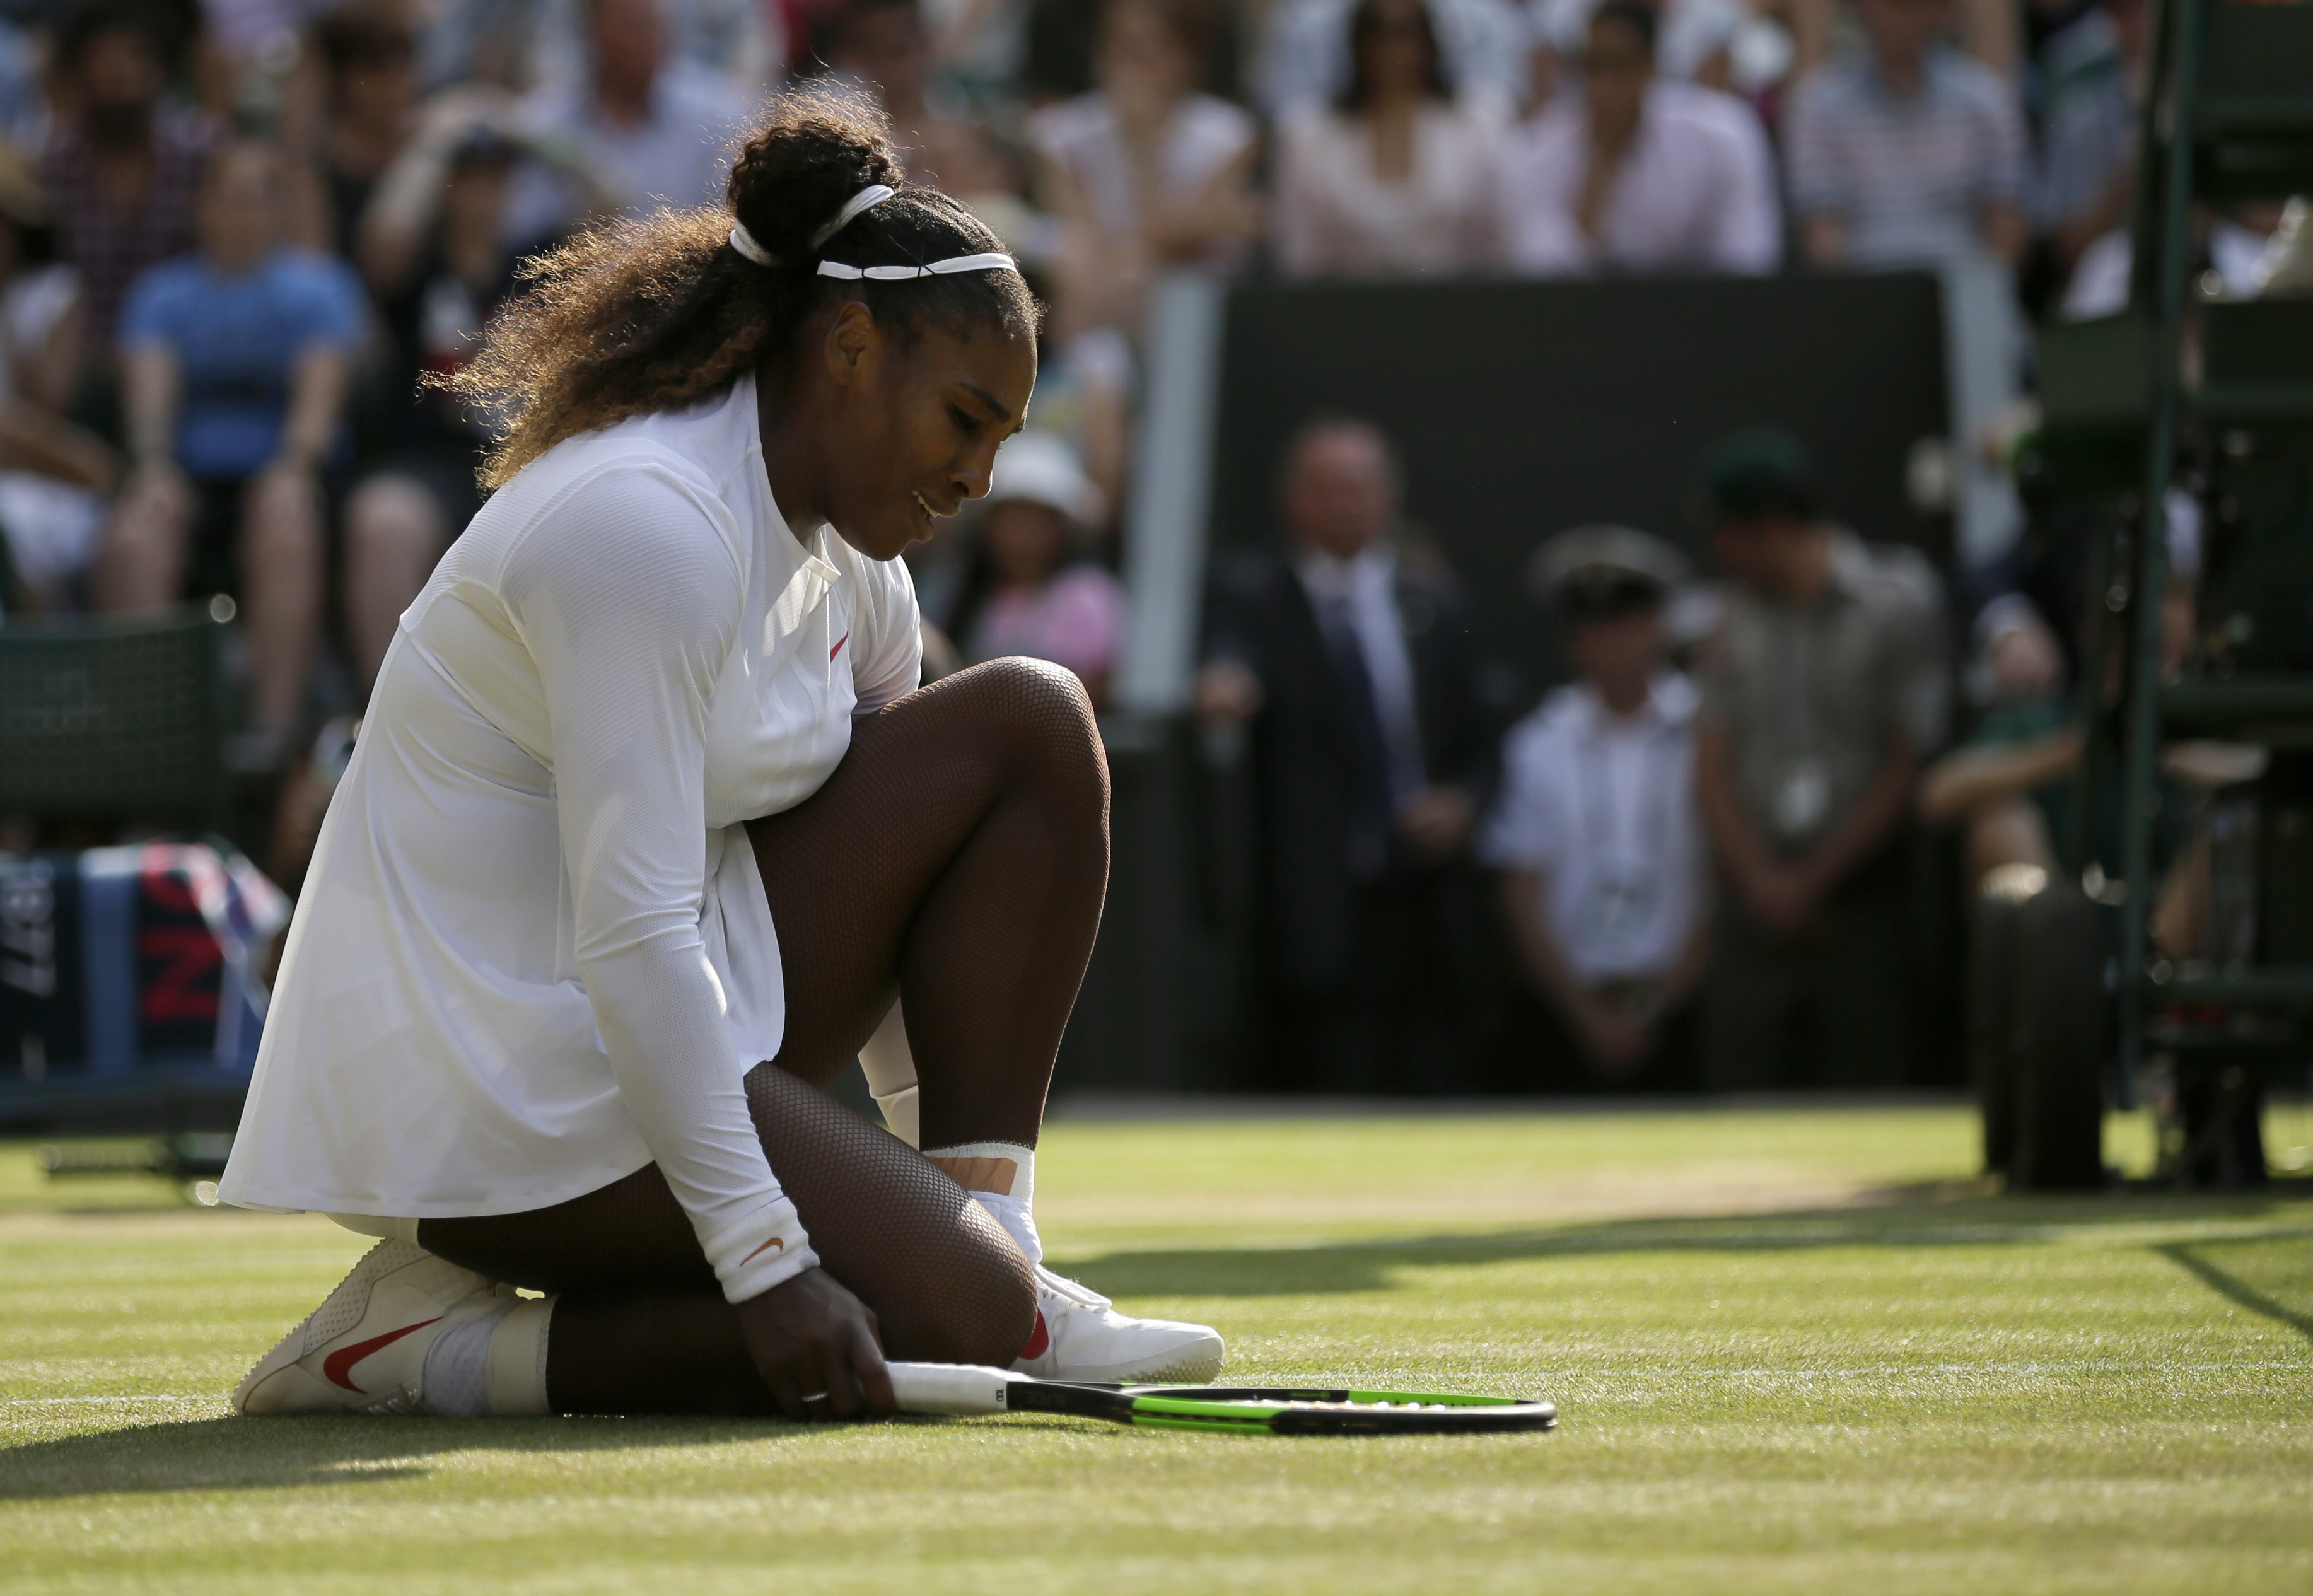 Serena Williams may be singled out for drug testing  The